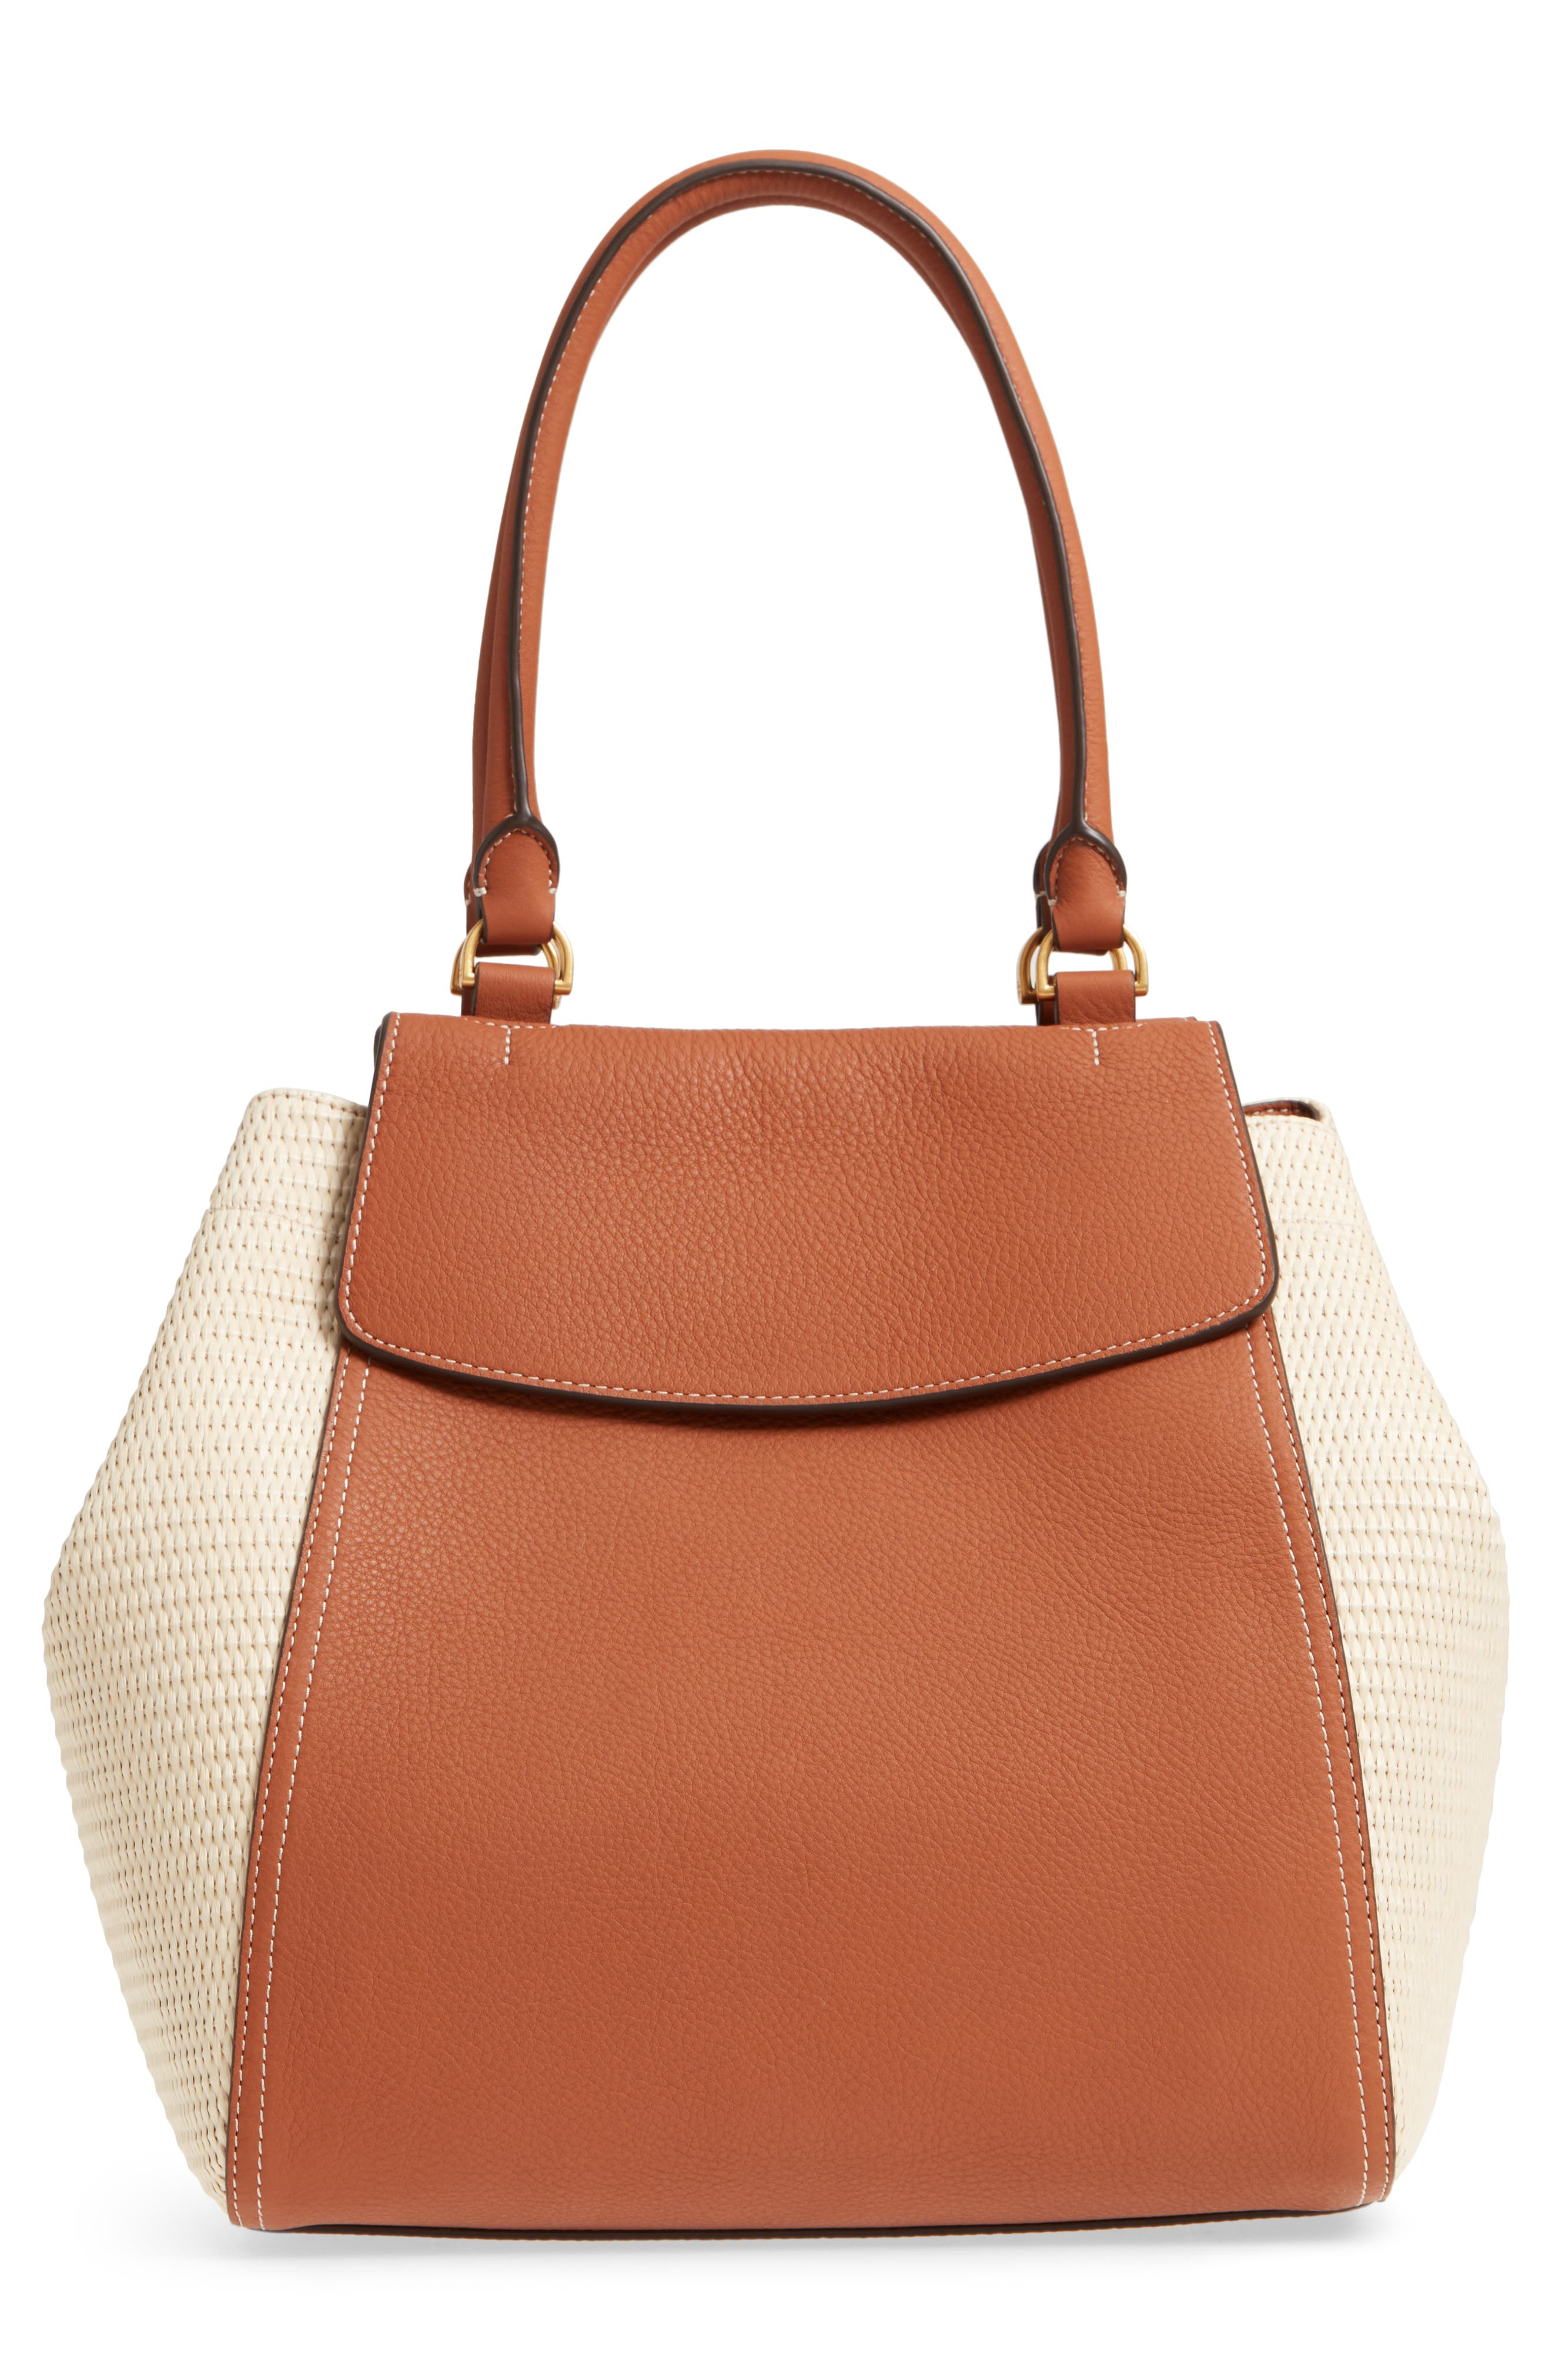 Half-Moon Straw & Leather Tote,                             Alternate thumbnail 3, color,                             Natural / Classic Tan